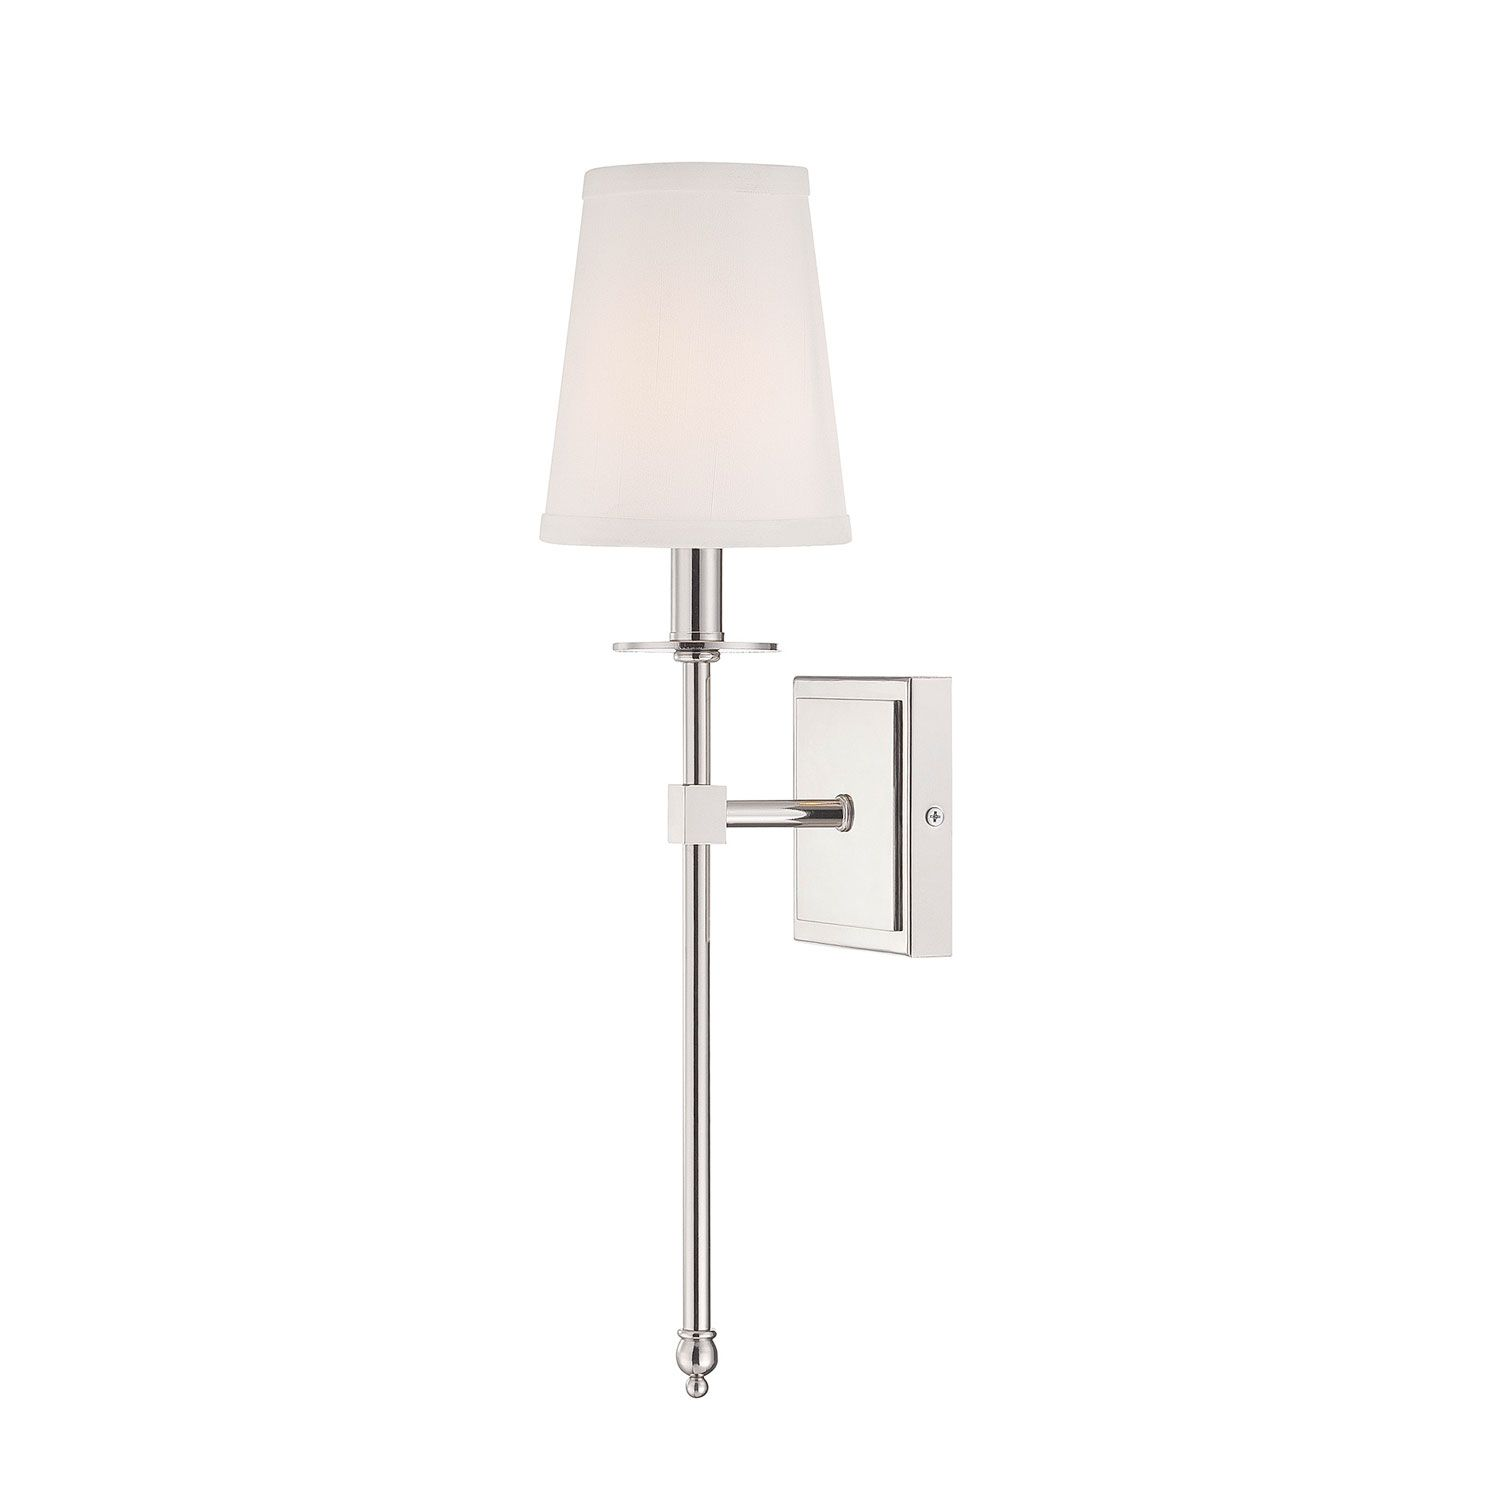 Savoy House Monroe Polished Nickel Onelight 5Inch Wide Wall Fair Small Wall Sconces For Bathroom Review